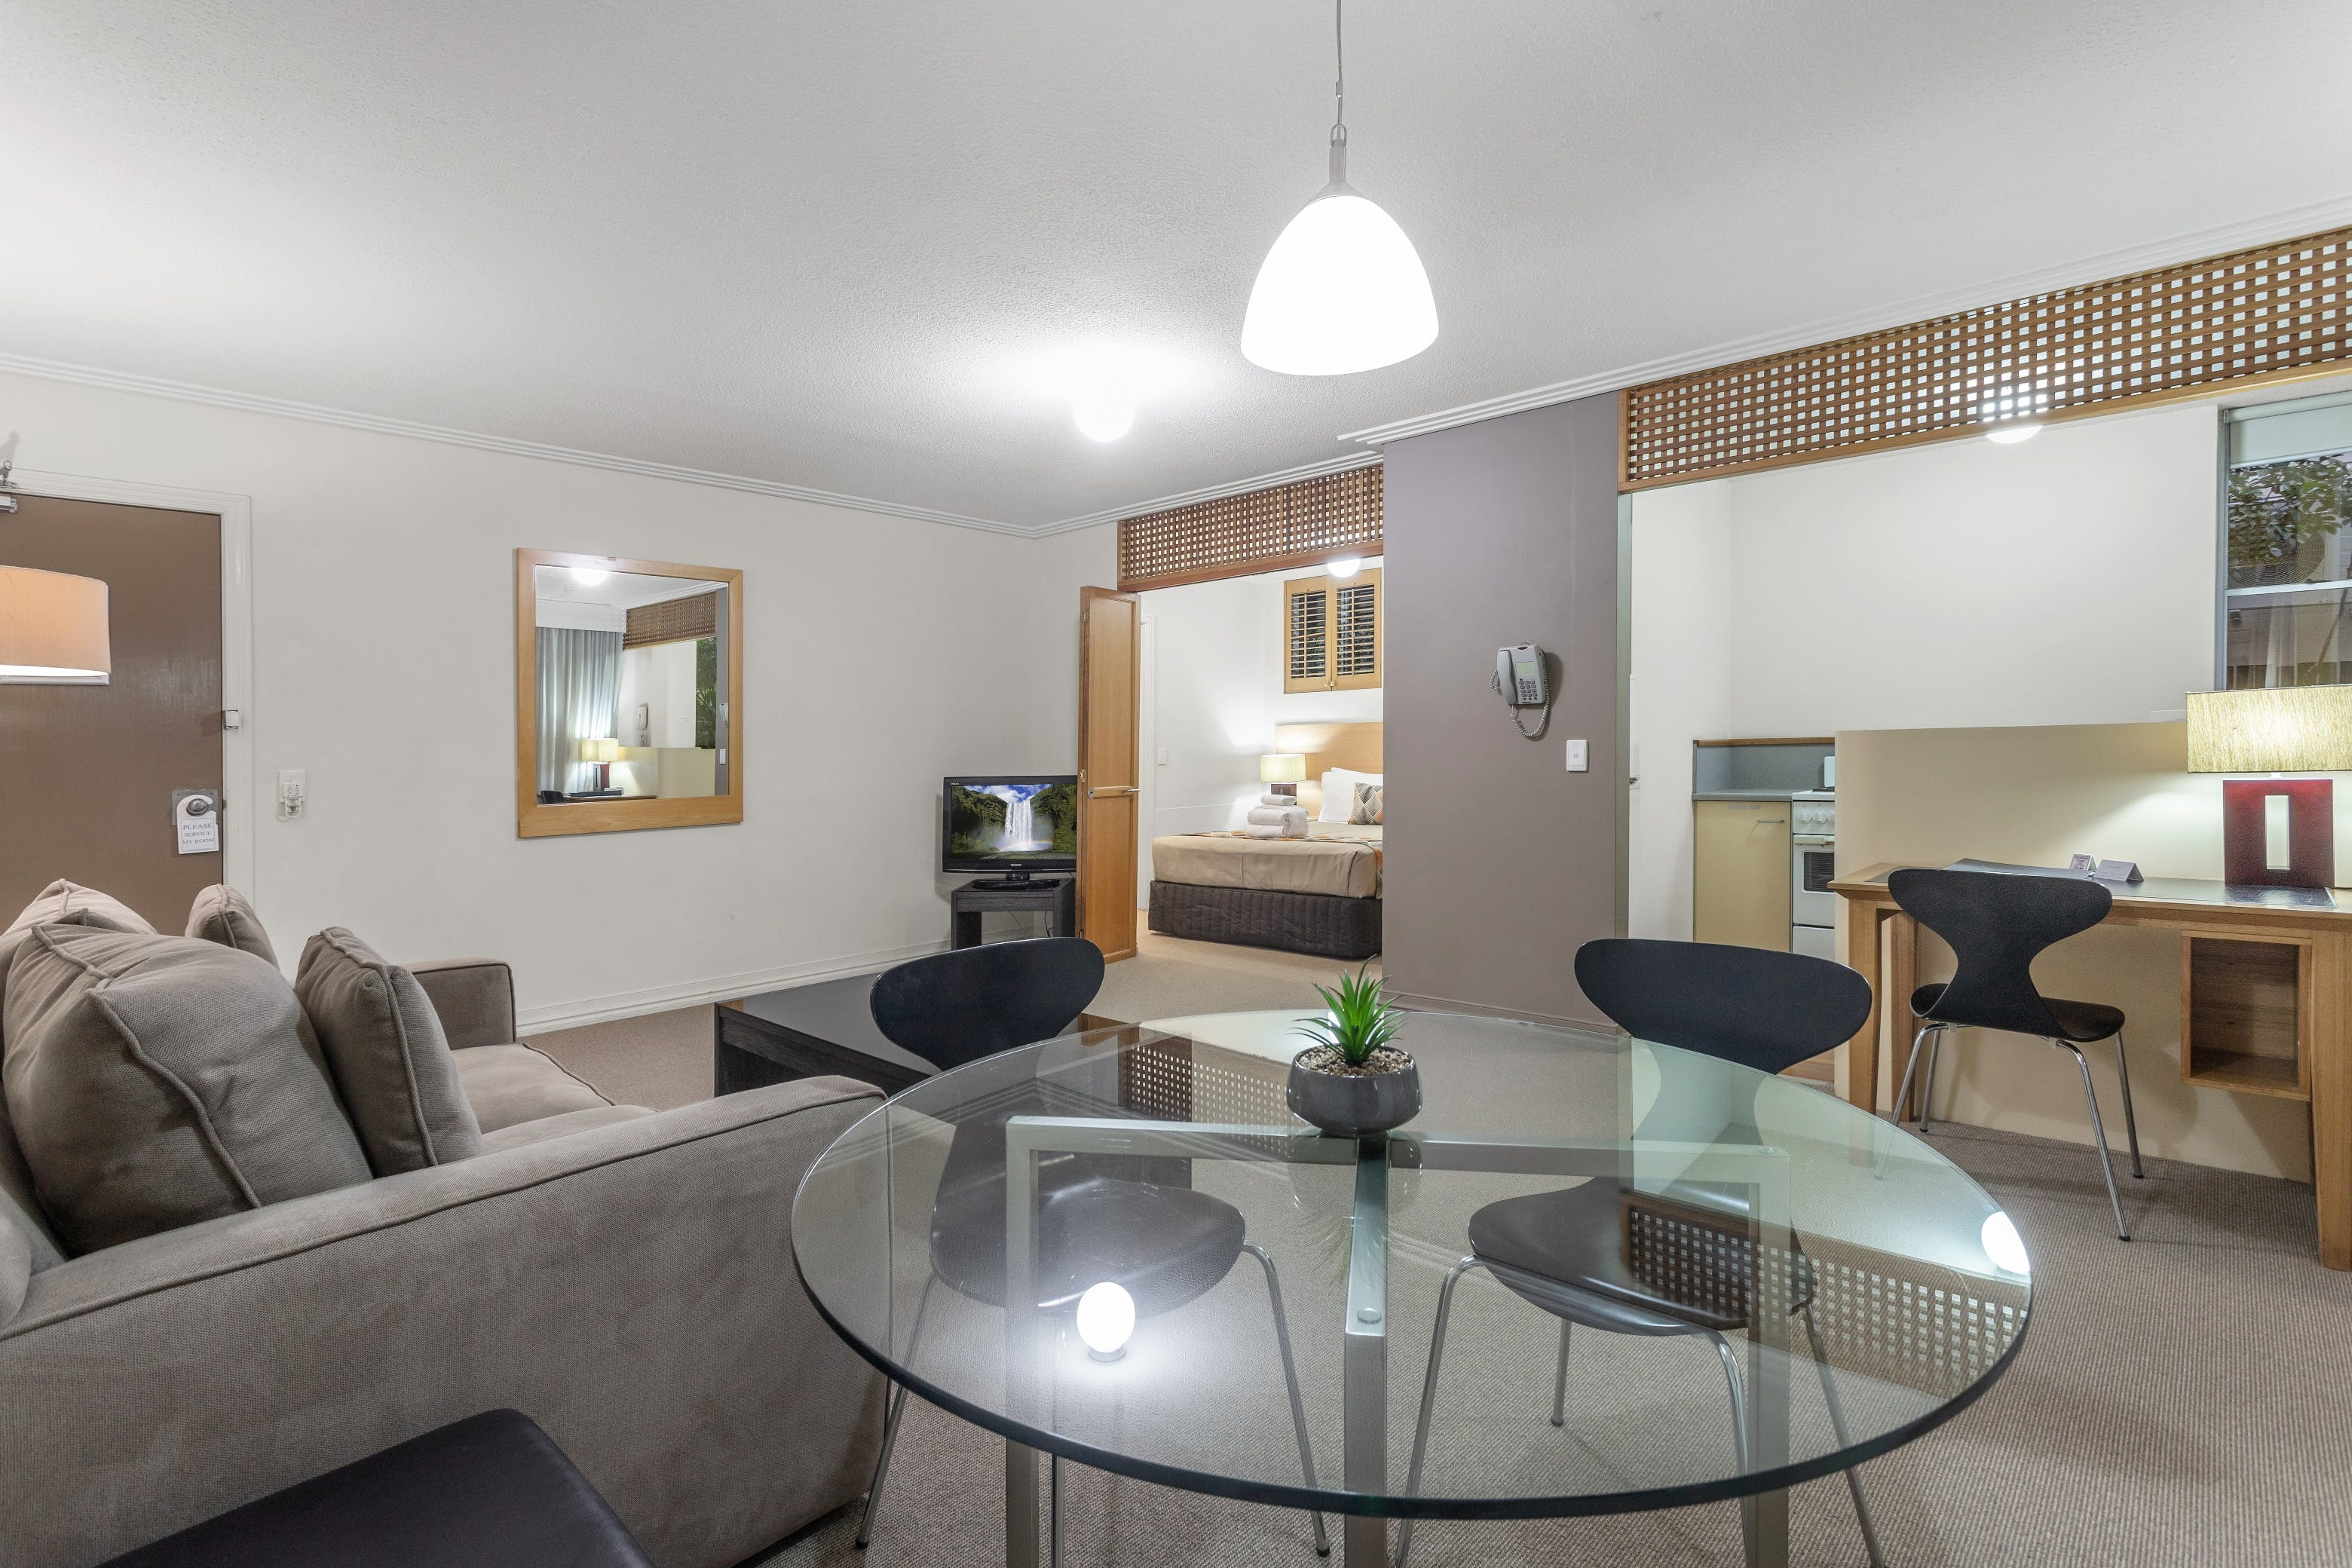 One bedroom apartment near Brisbane Airport and city, weekly rates available